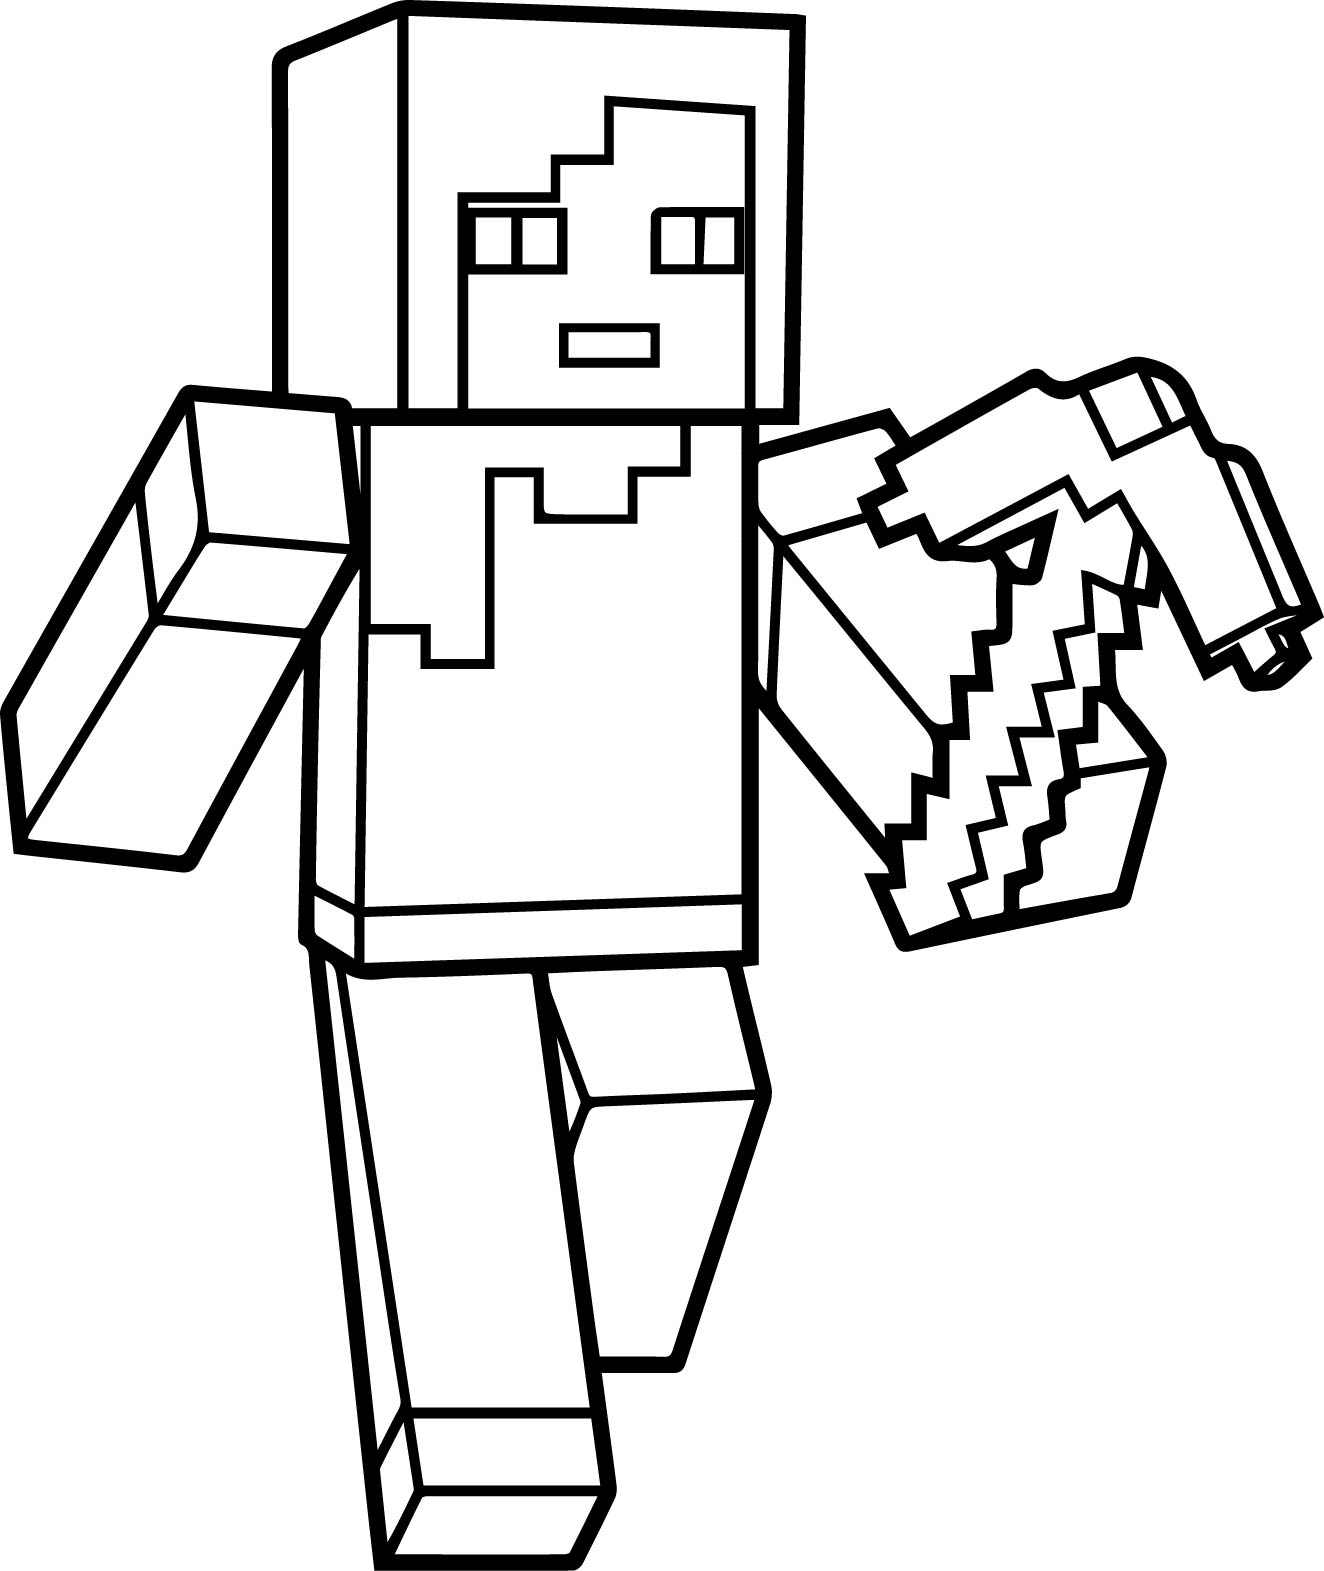 Minecraft Coloring Pages Best Coloring Pages For Kids Printable Minecraft Coloring Pages